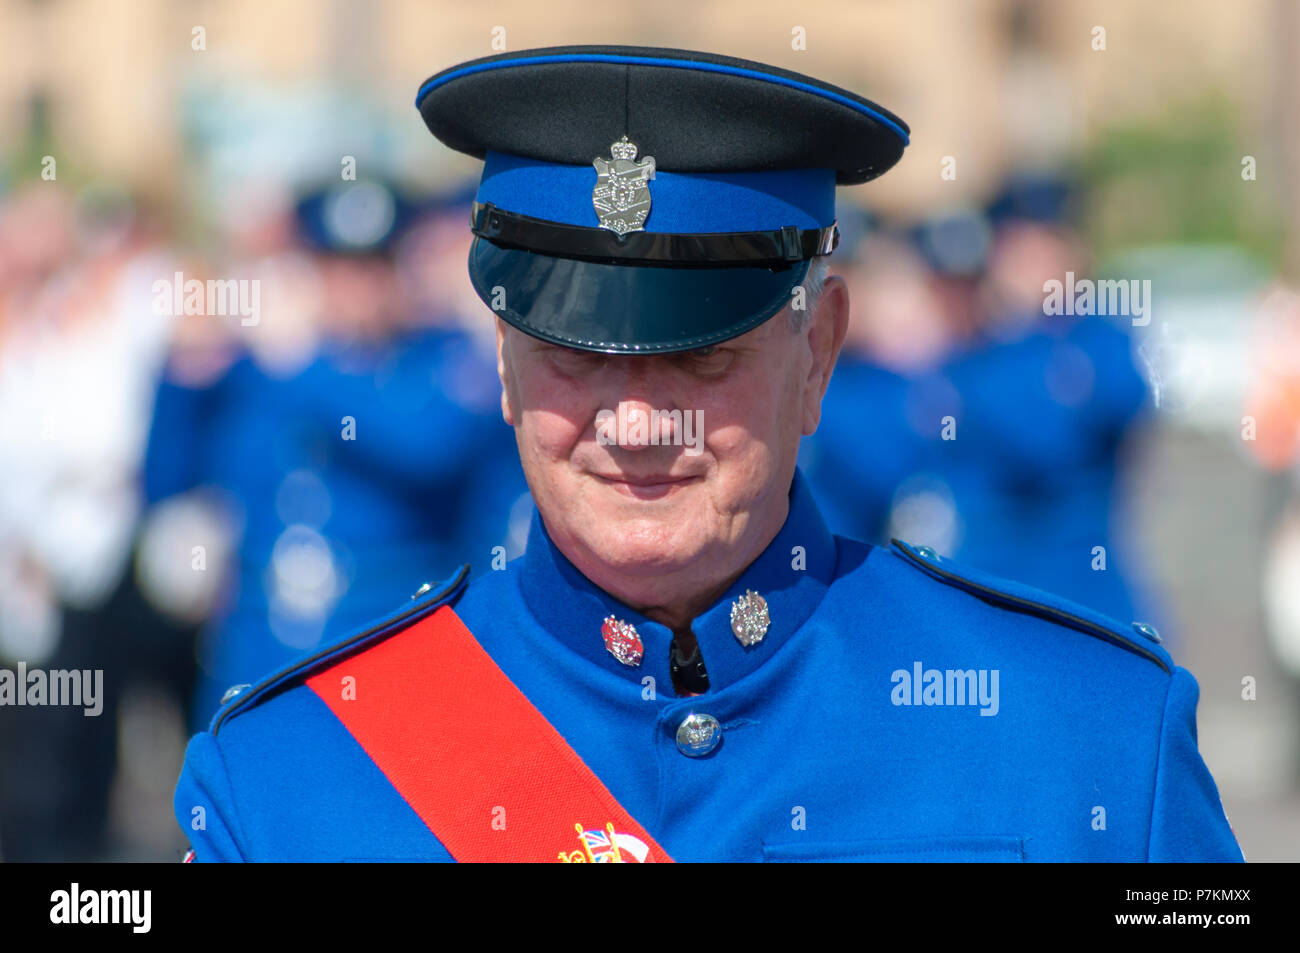 Glasgow, Scotland, UK. 7th July, 2018. A male band member wearing a uniform taking part in the annual Orange Walk through the streets of the city to mark the victory of Prince William of Orange over King James II at the Battle of the Boyne in 1690. Credit: Skully/Alamy Live News - Stock Image